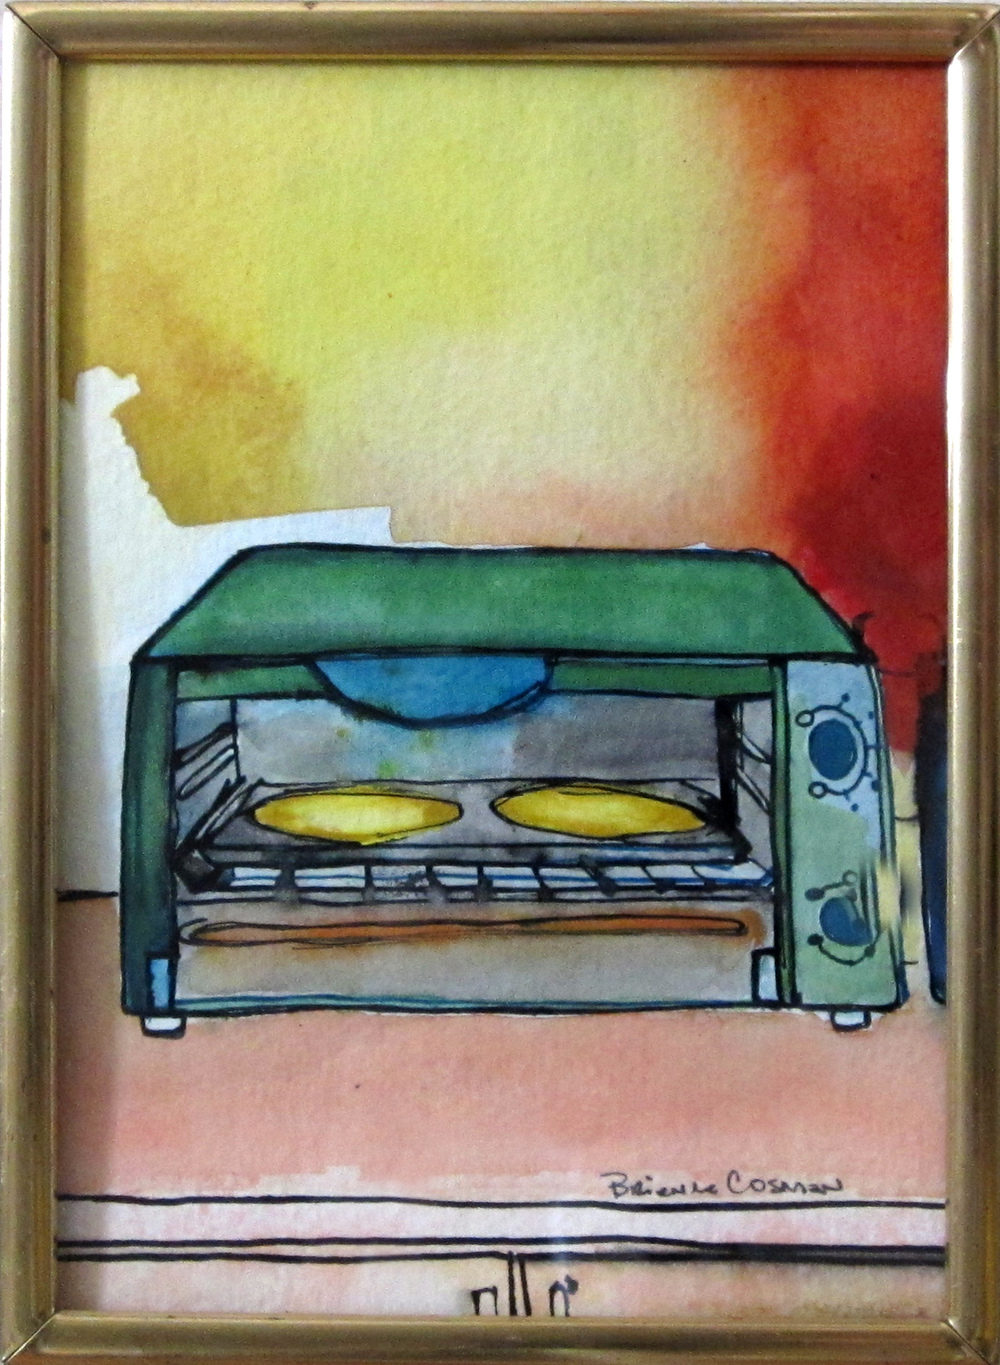 31: Taco Lunch in My Toaster 5 x 7""